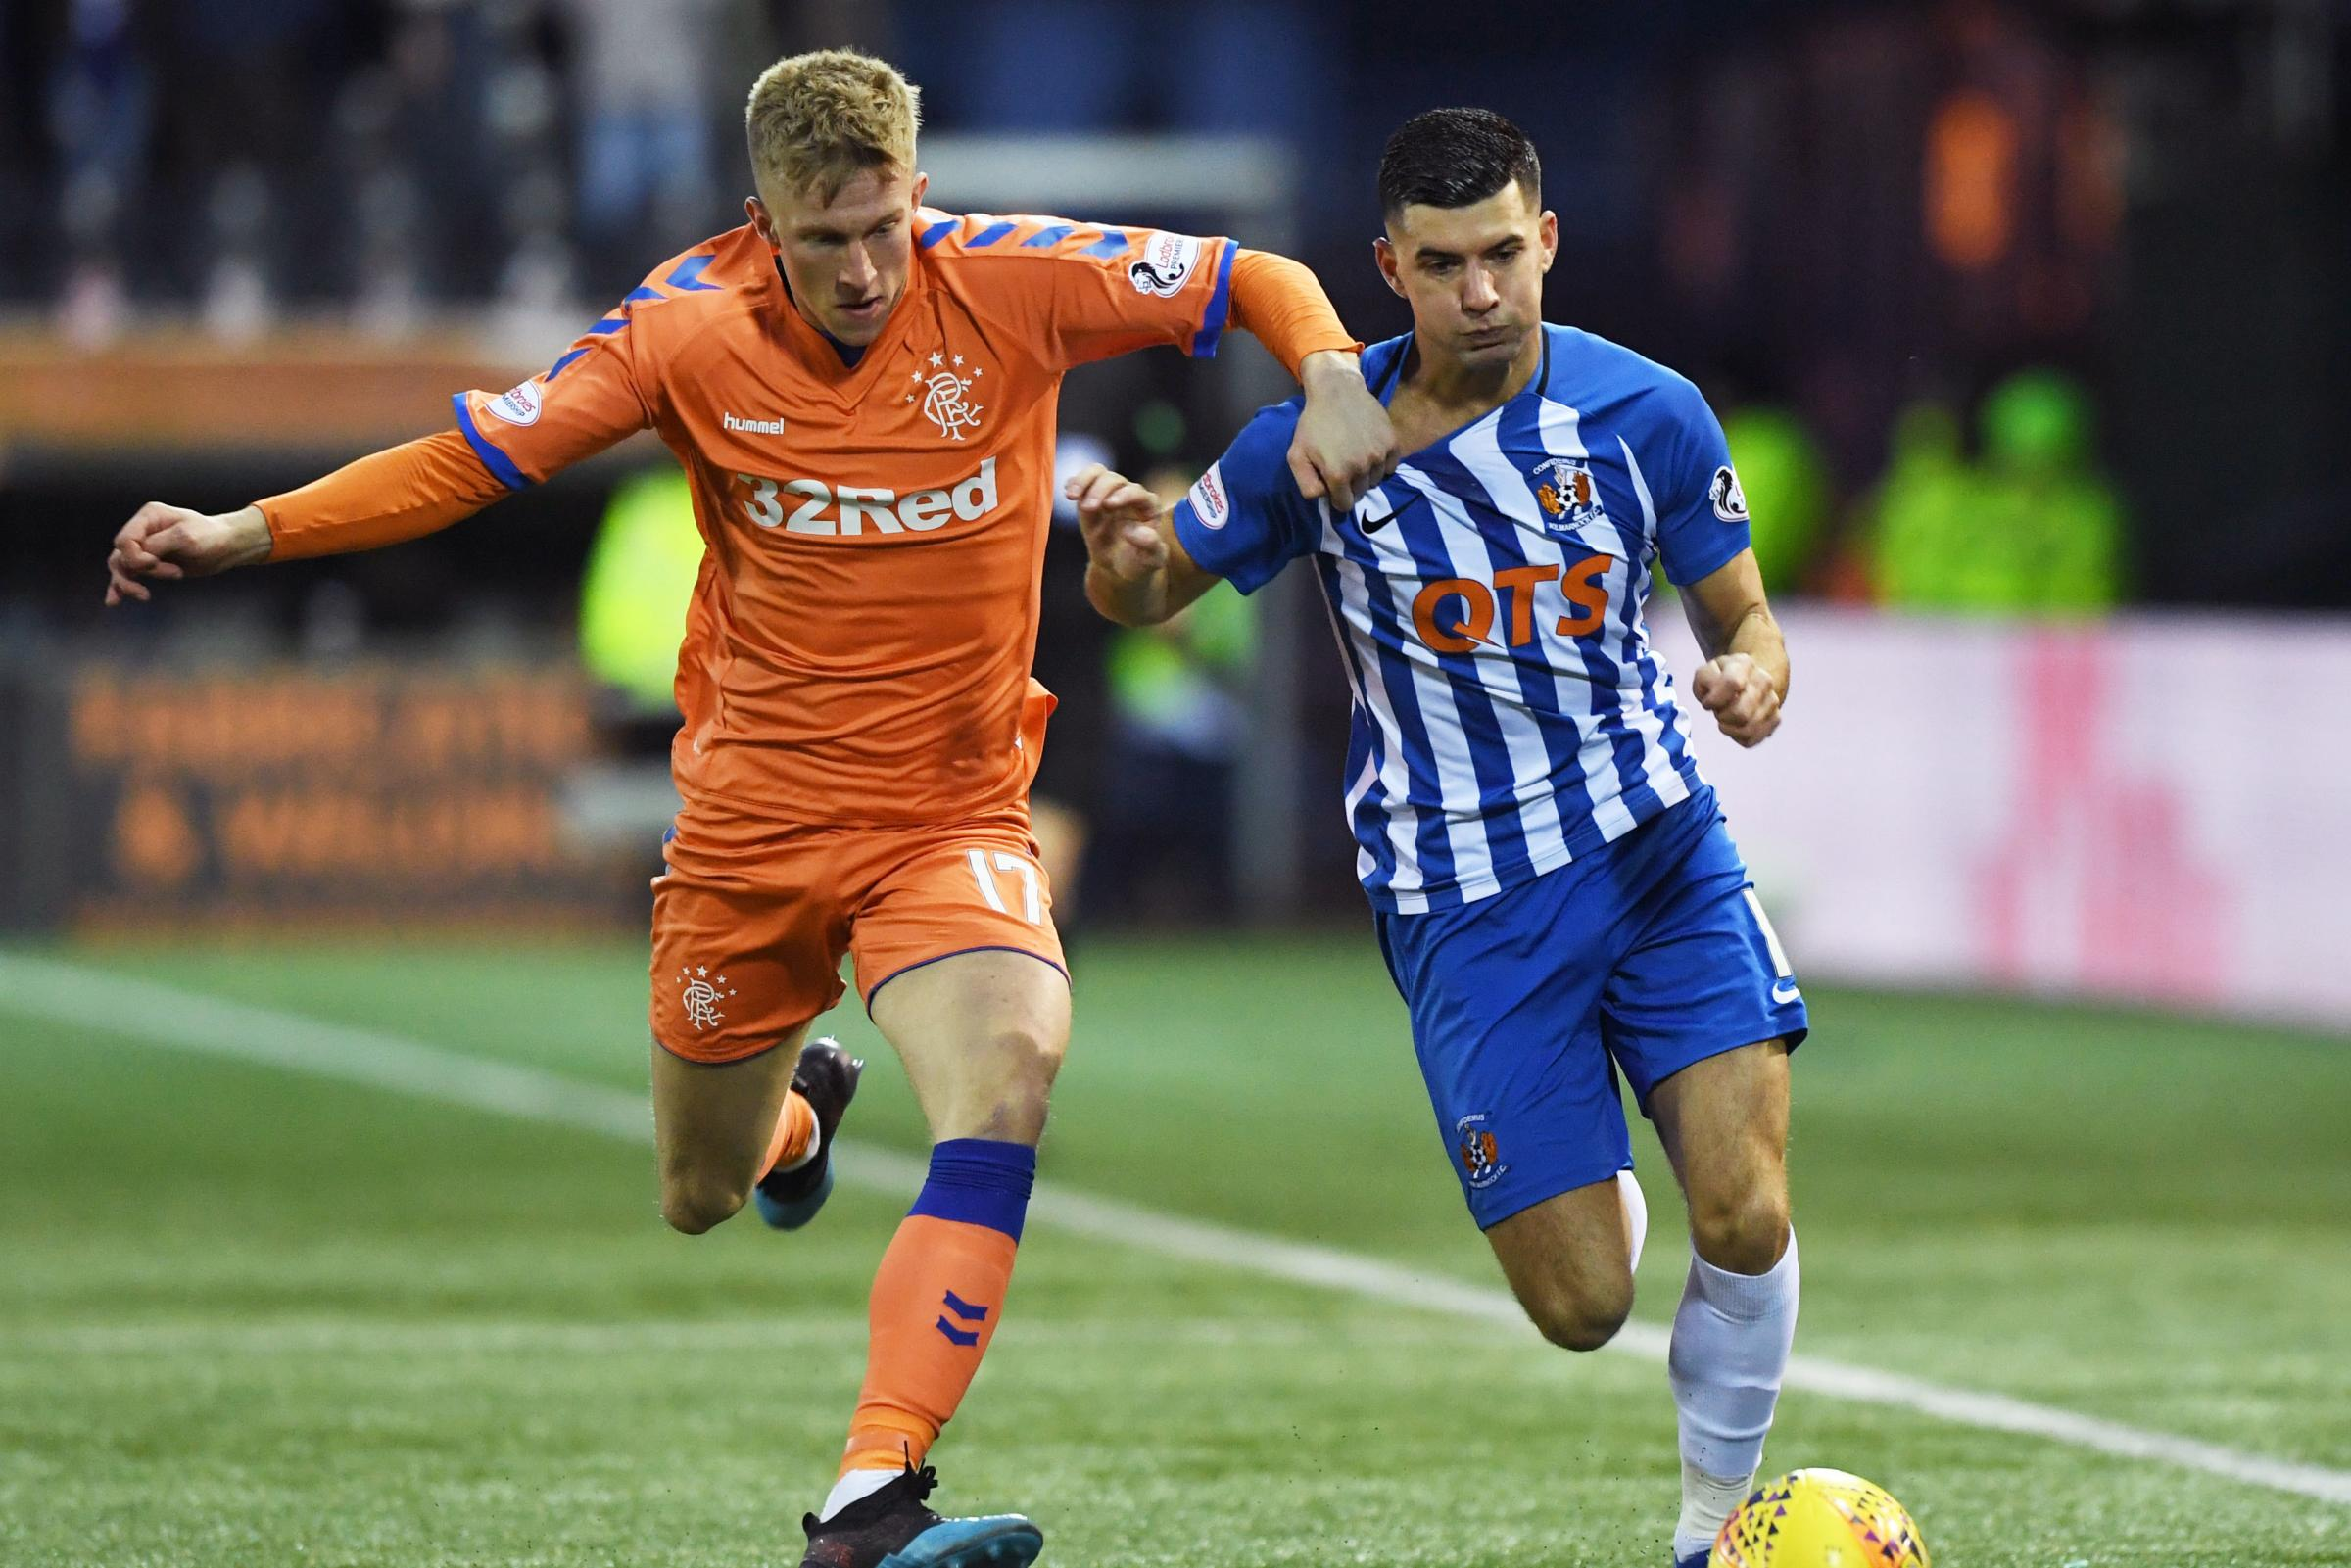 Lee McCulloch: Ross McCrorie will be delighted with Steven Gerrard's words of encouragement at Rangers